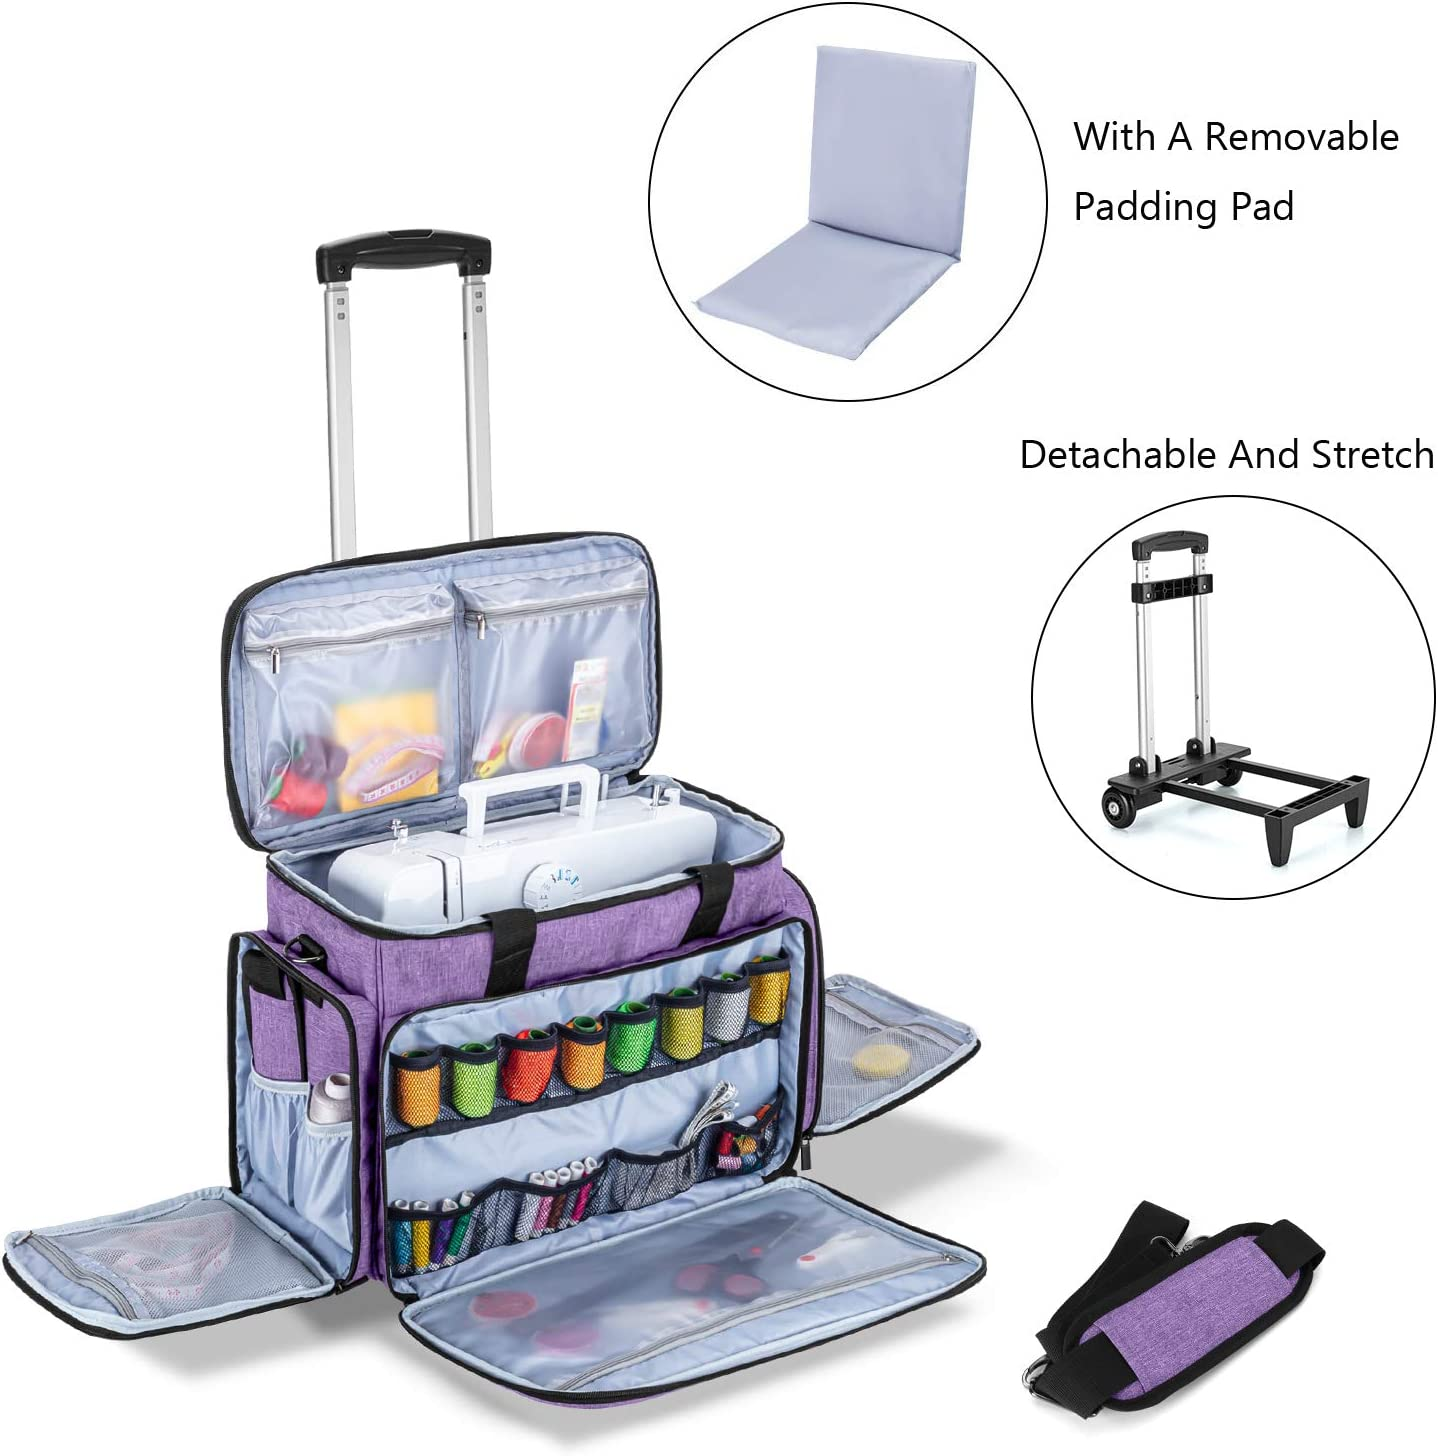 Patent Pending Luxja Sewing Machine Case with Detachable Trolley Dolly Sewing Machine Tote with Removable Bottom Pad Black